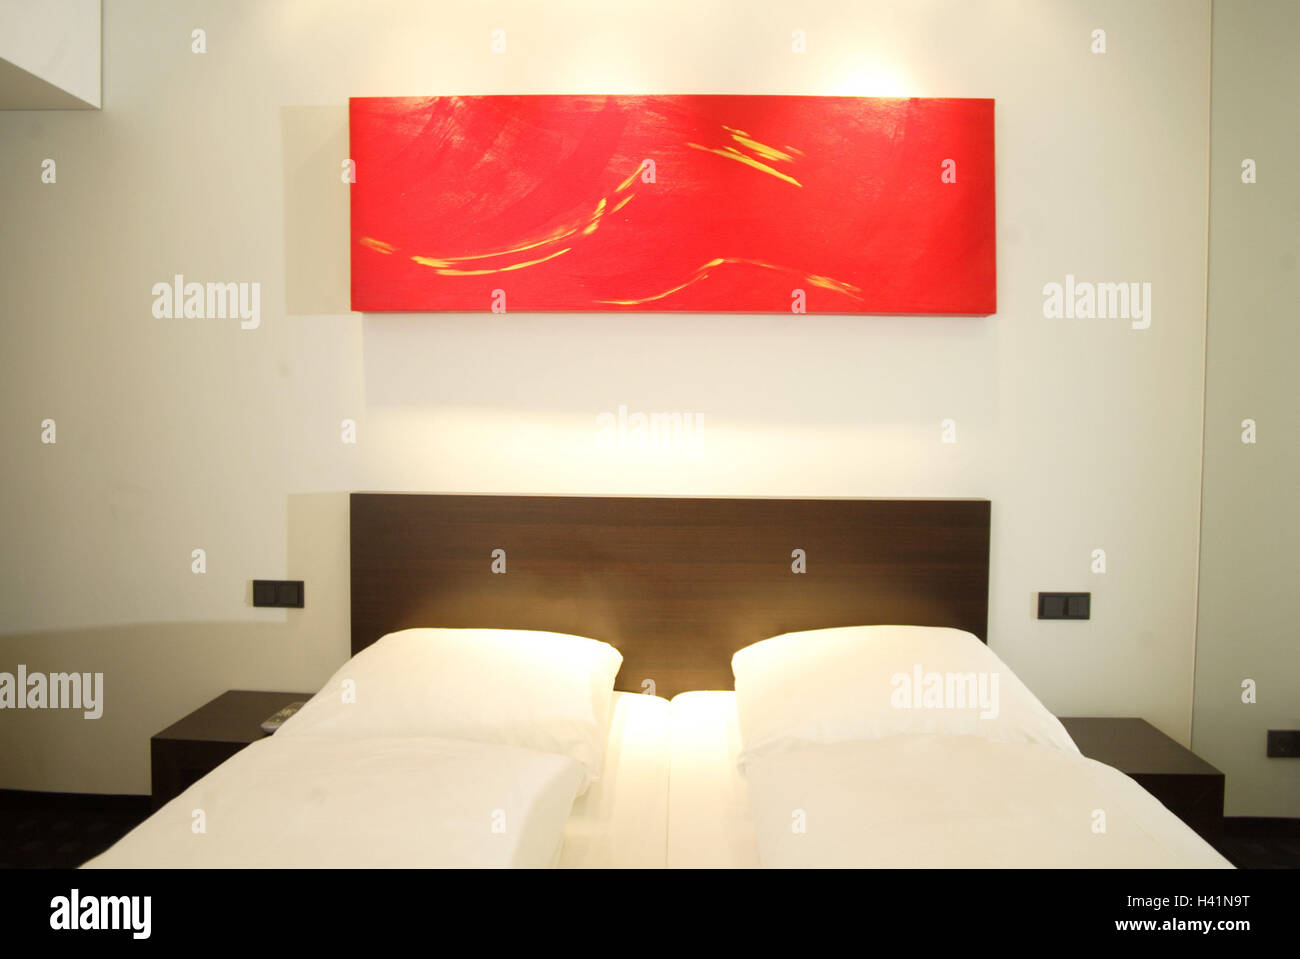 Literie D Hotel Chambre à Coucher Lit Double Mur Photo Rouge